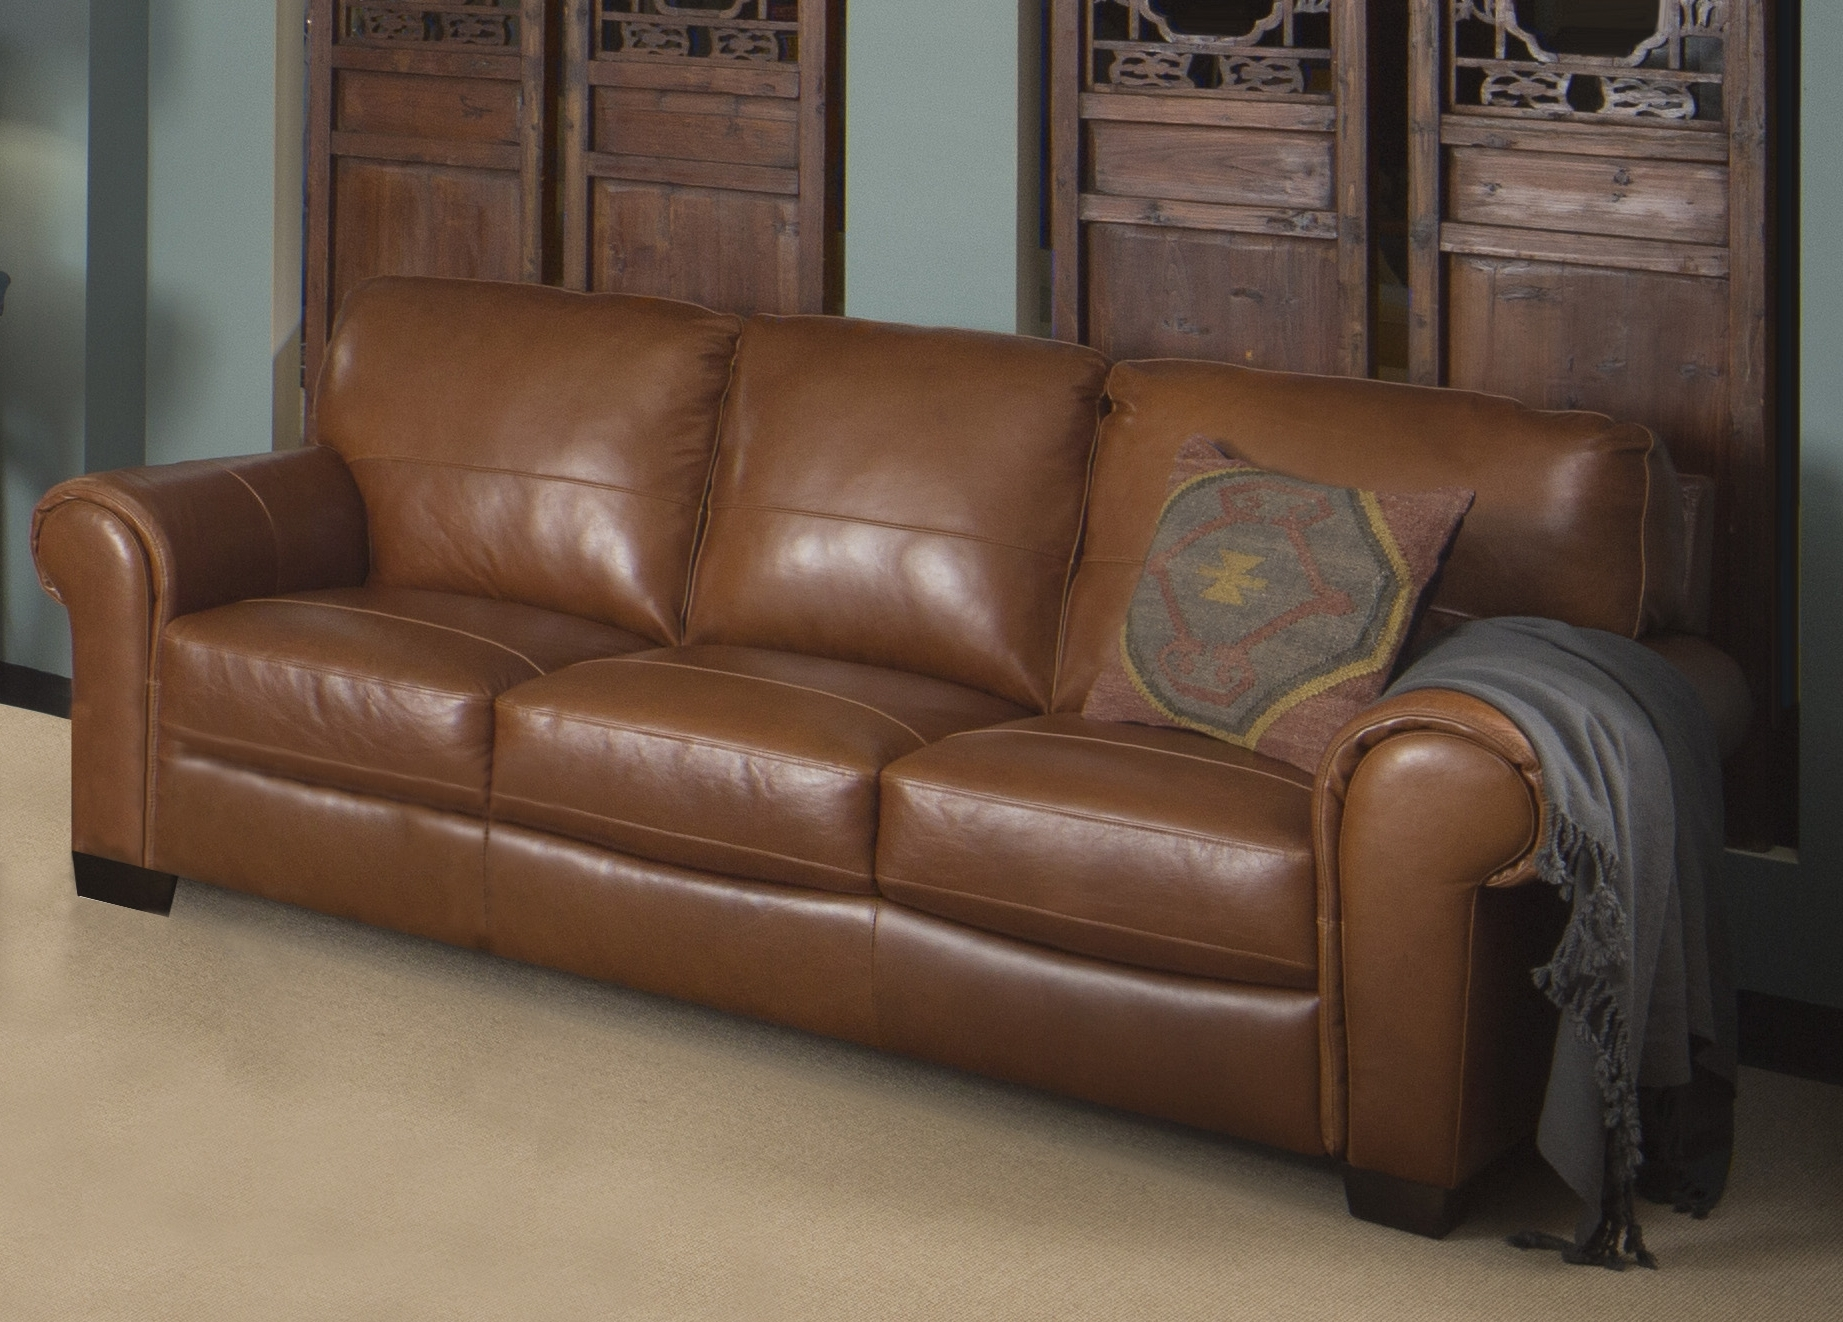 Dining & Living Pertaining To Leather Lounge Sofas (View 4 of 15)